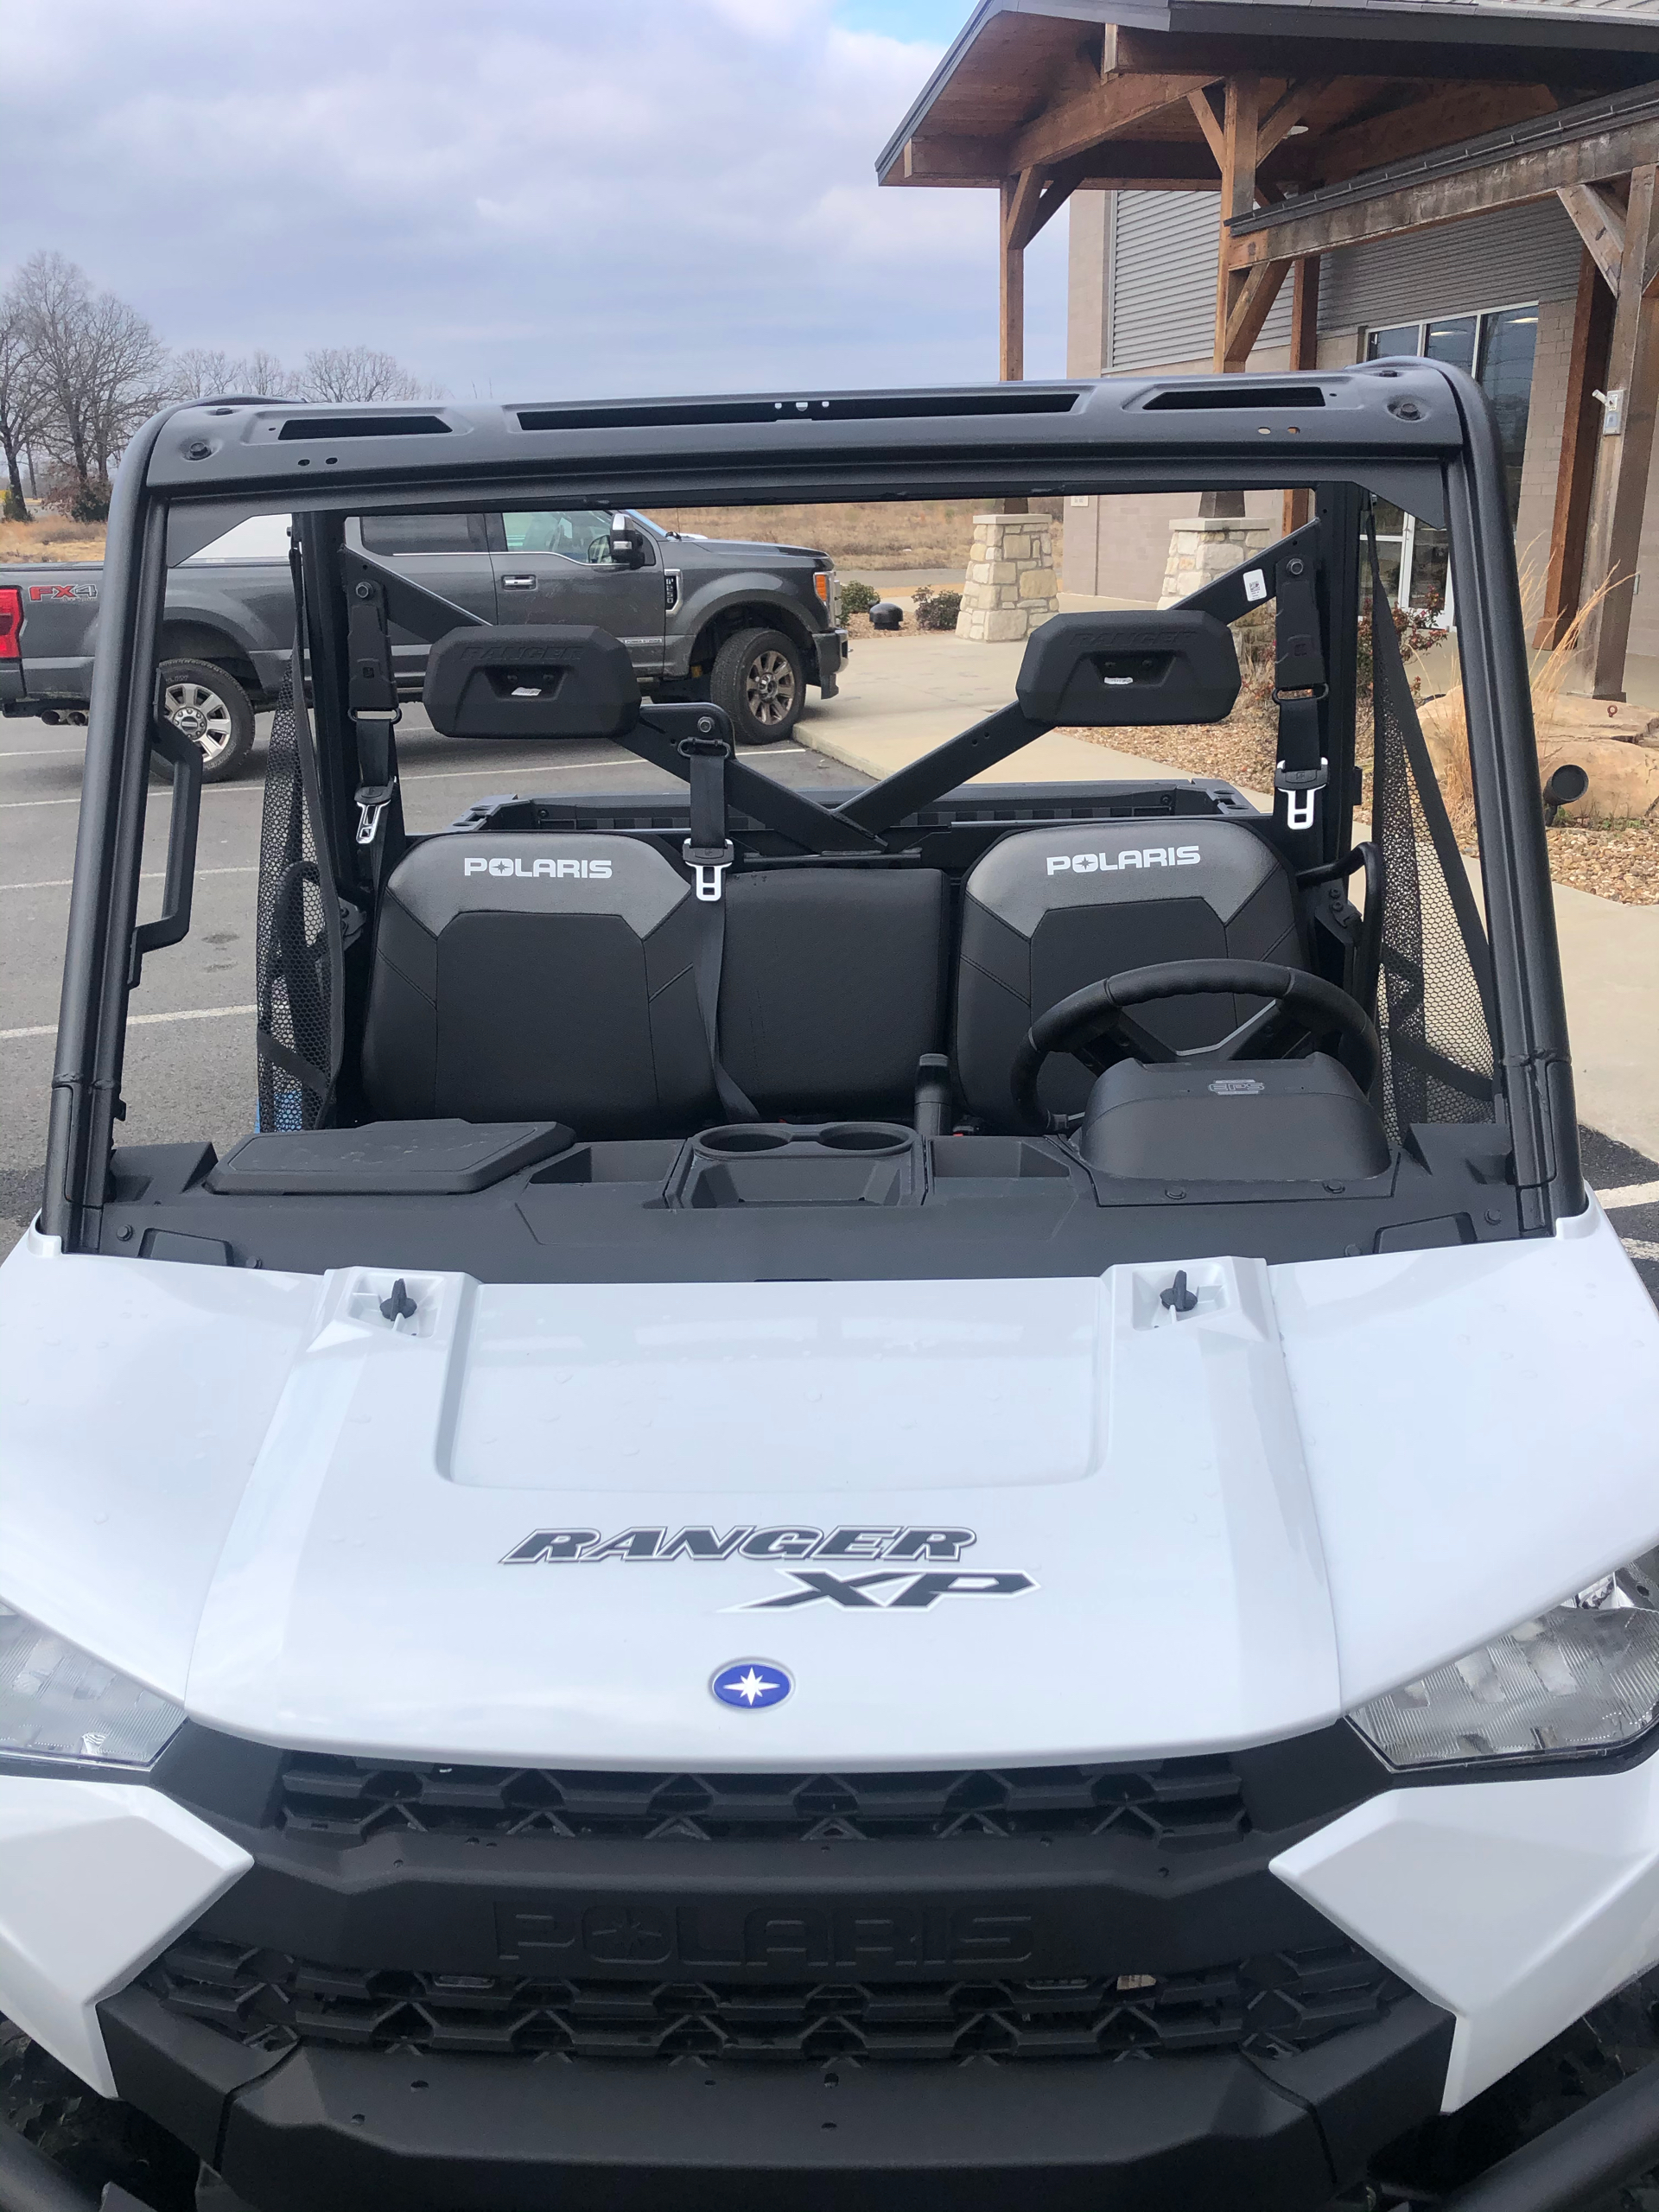 2021 Polaris Ranger XP 1000 Premium in Conway, Arkansas - Photo 5